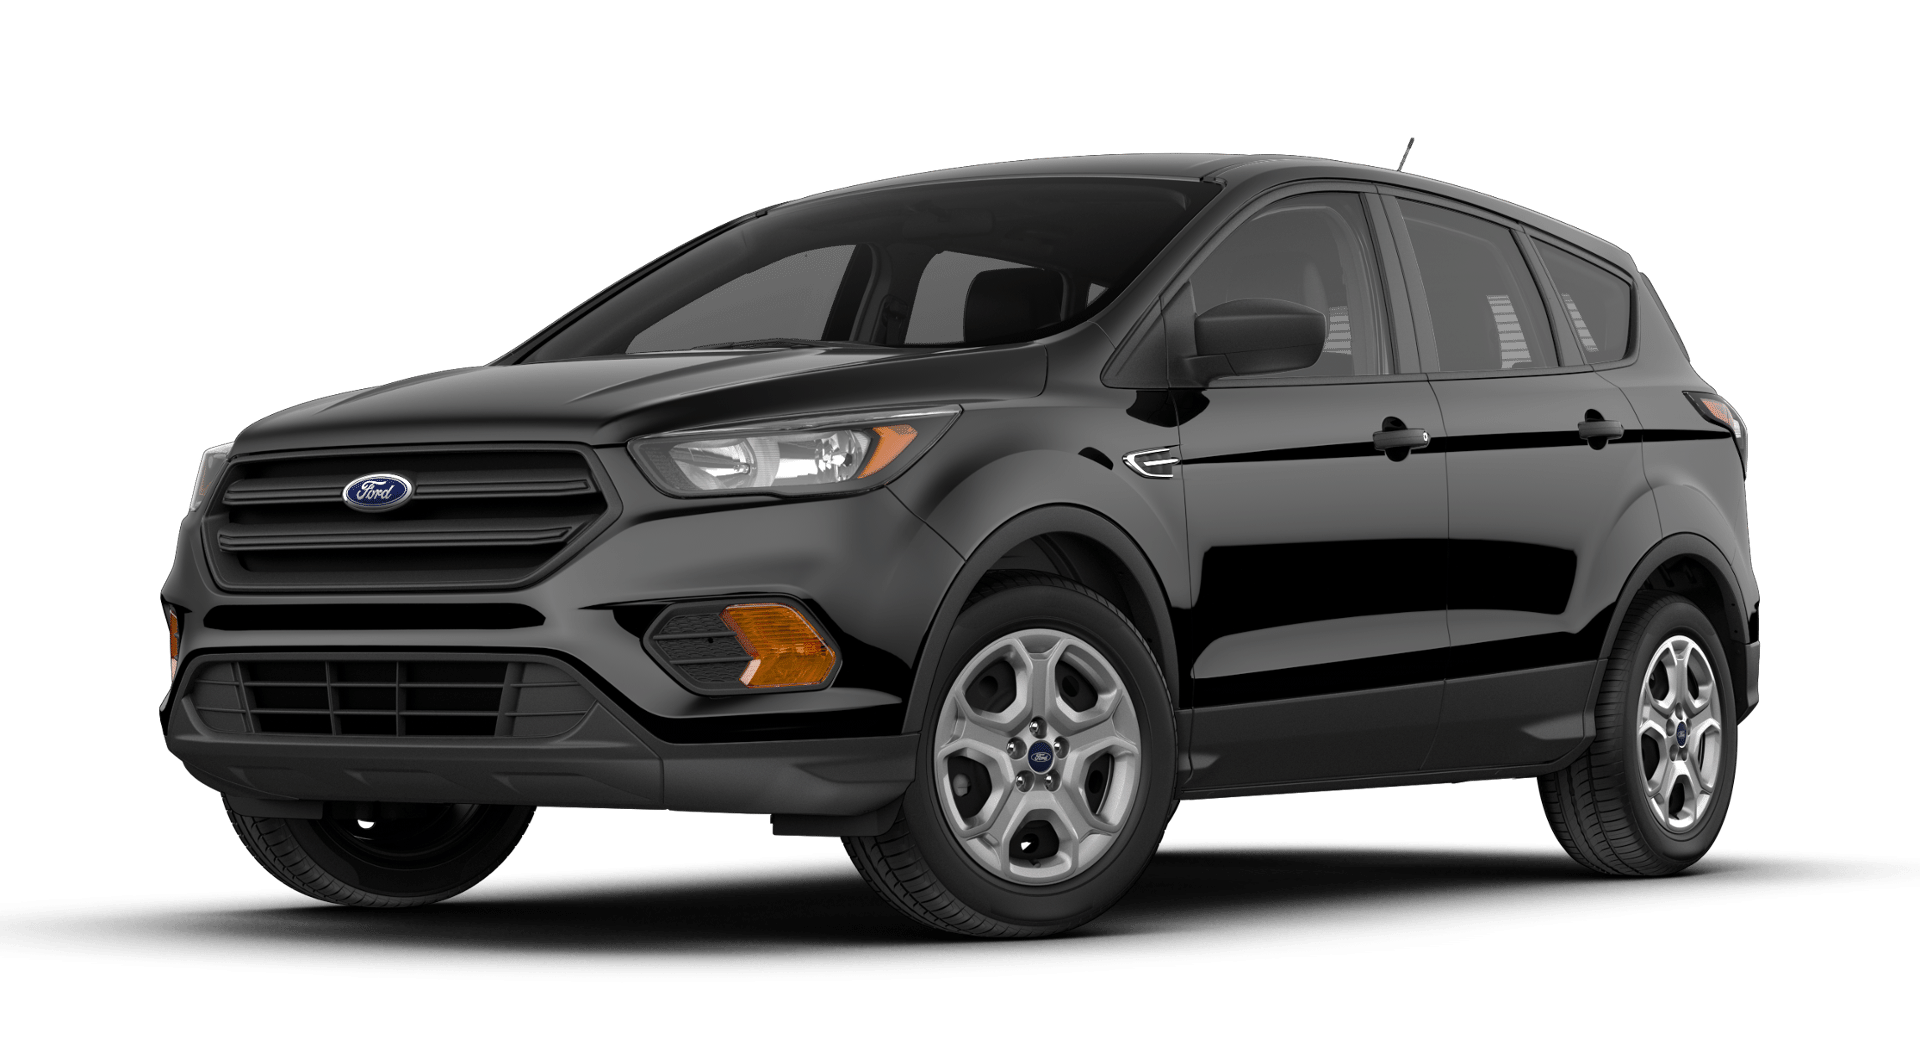 2018 ford escape s bill talley ford mechanicsville va. Black Bedroom Furniture Sets. Home Design Ideas